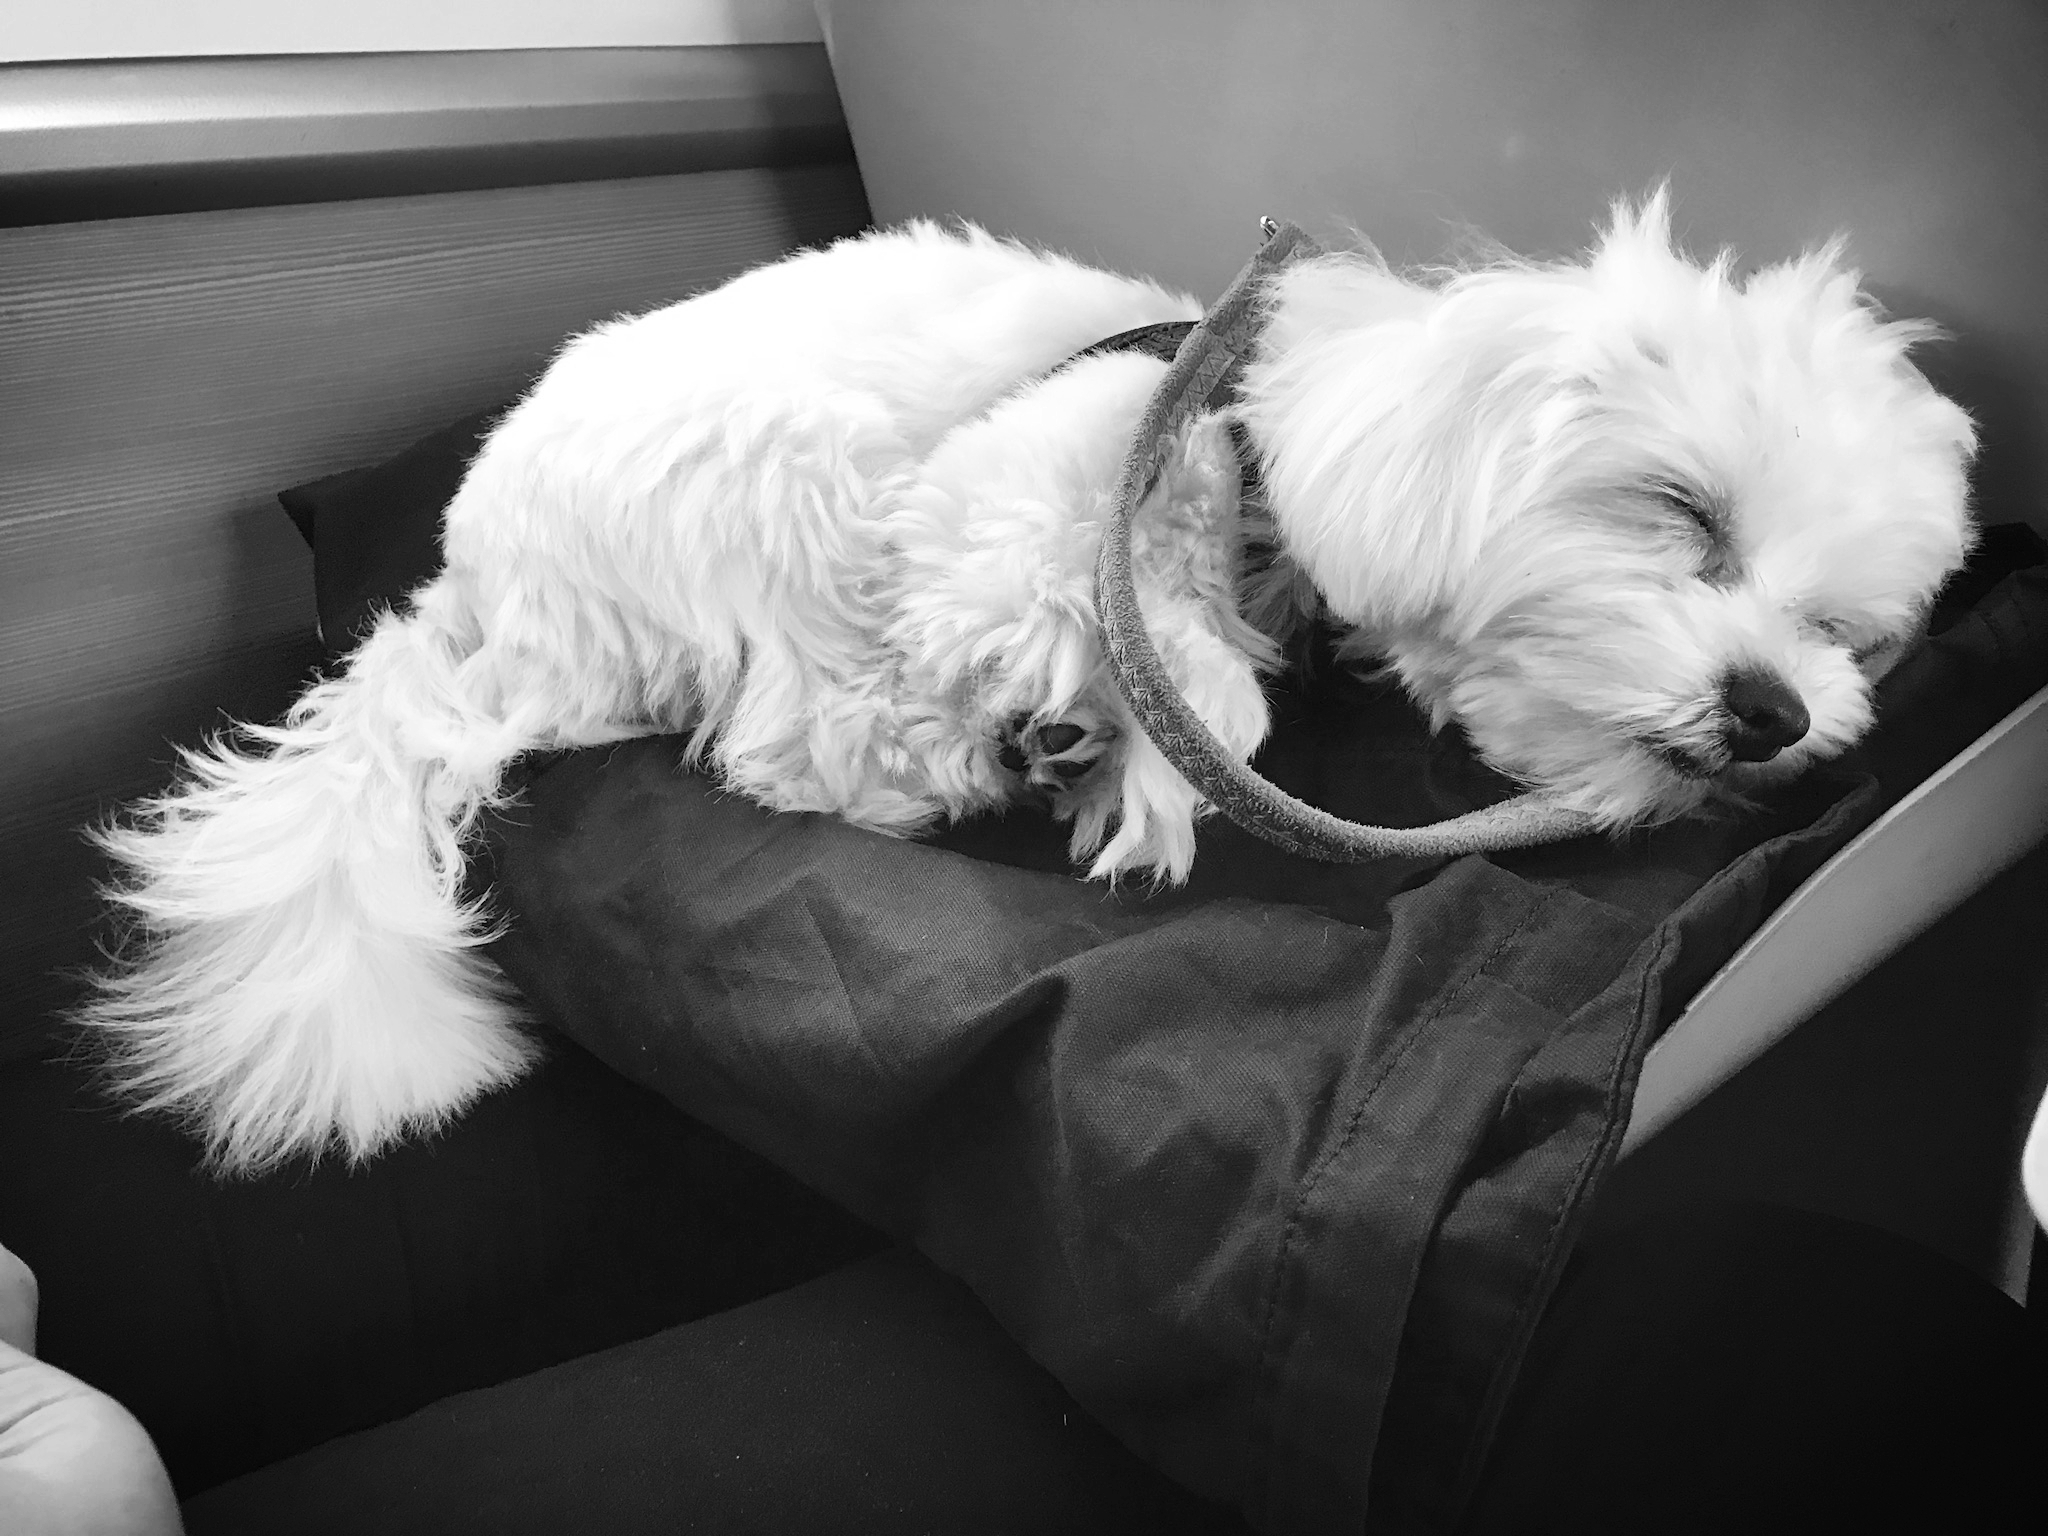 Casper on the train | Credit: Alex Bateman